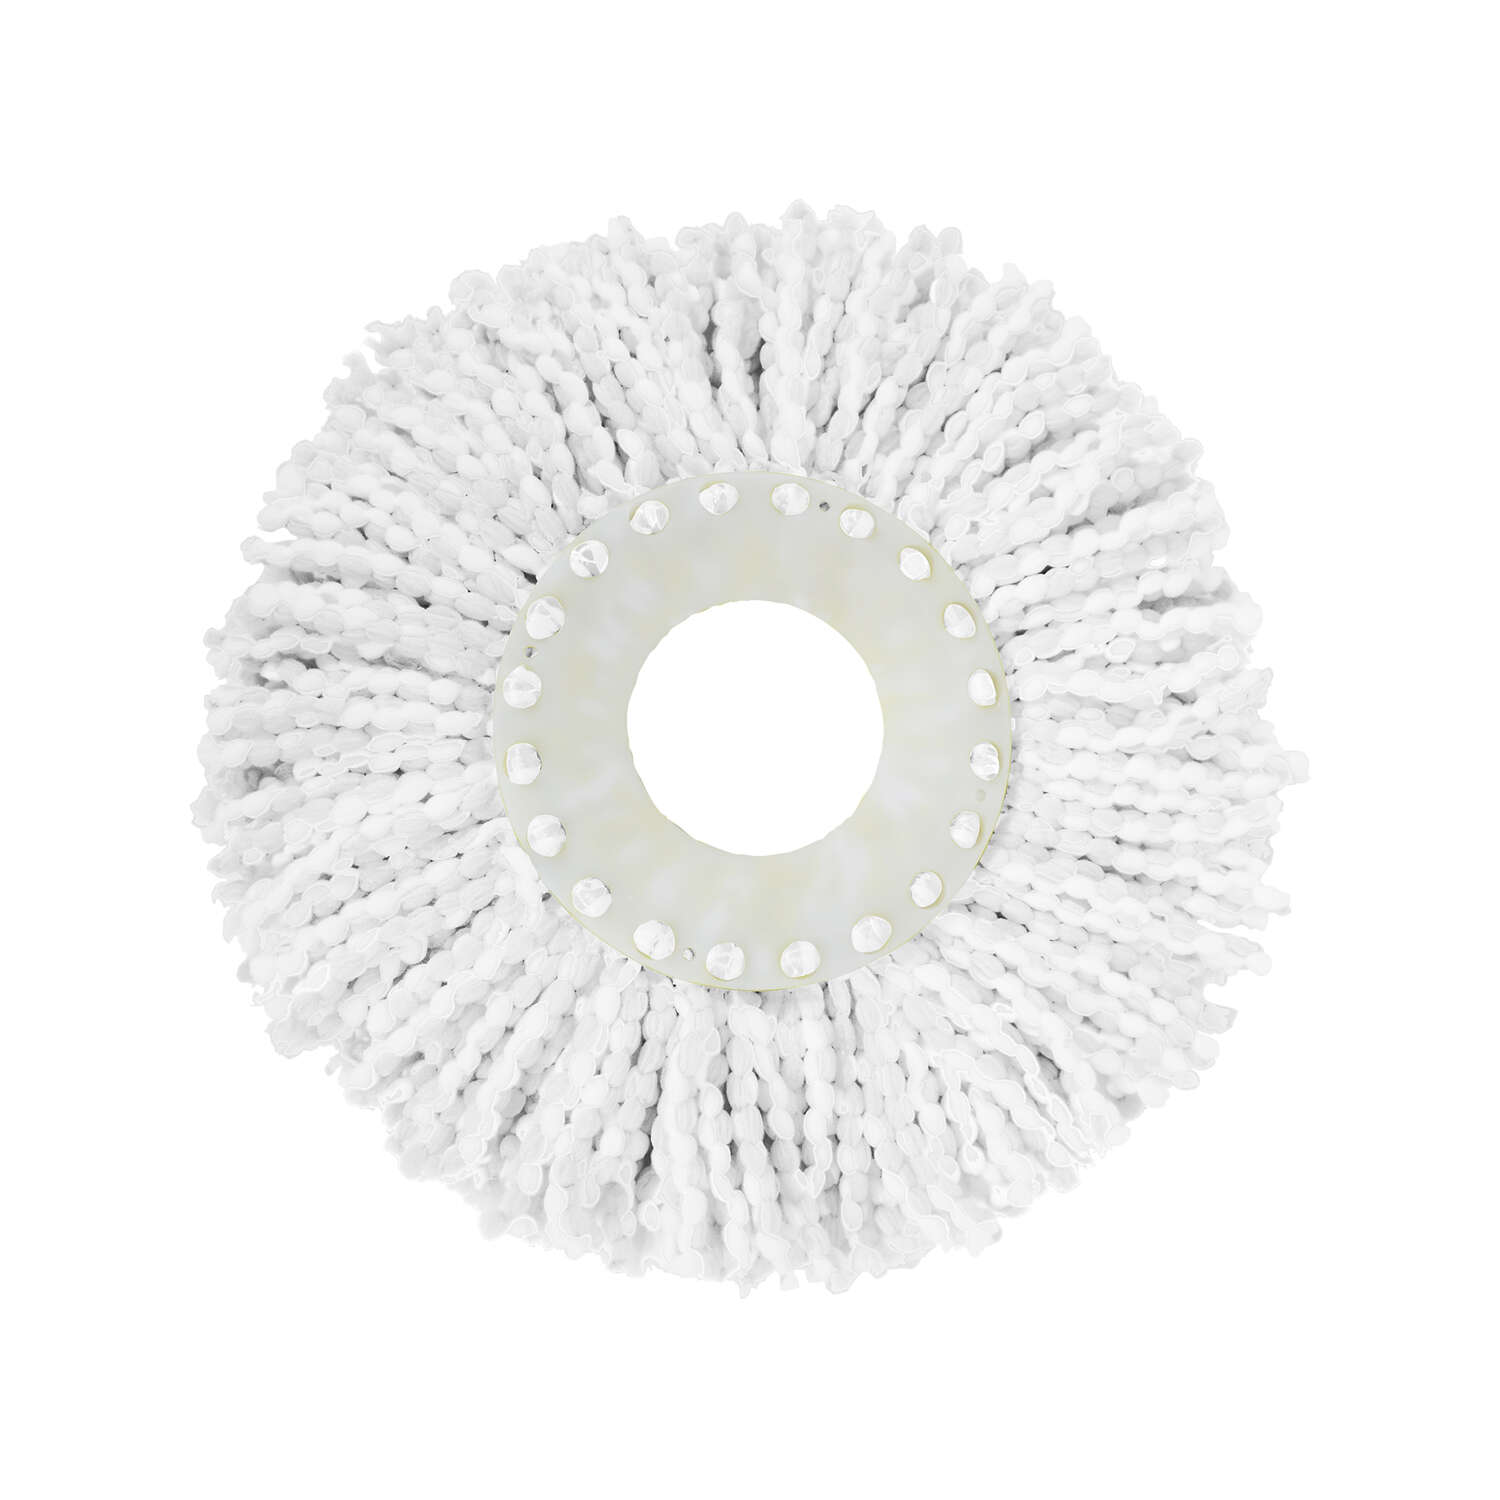 Casabella  Spin Cycle  10 in. L Microfiber  Mop Refill  1 pk